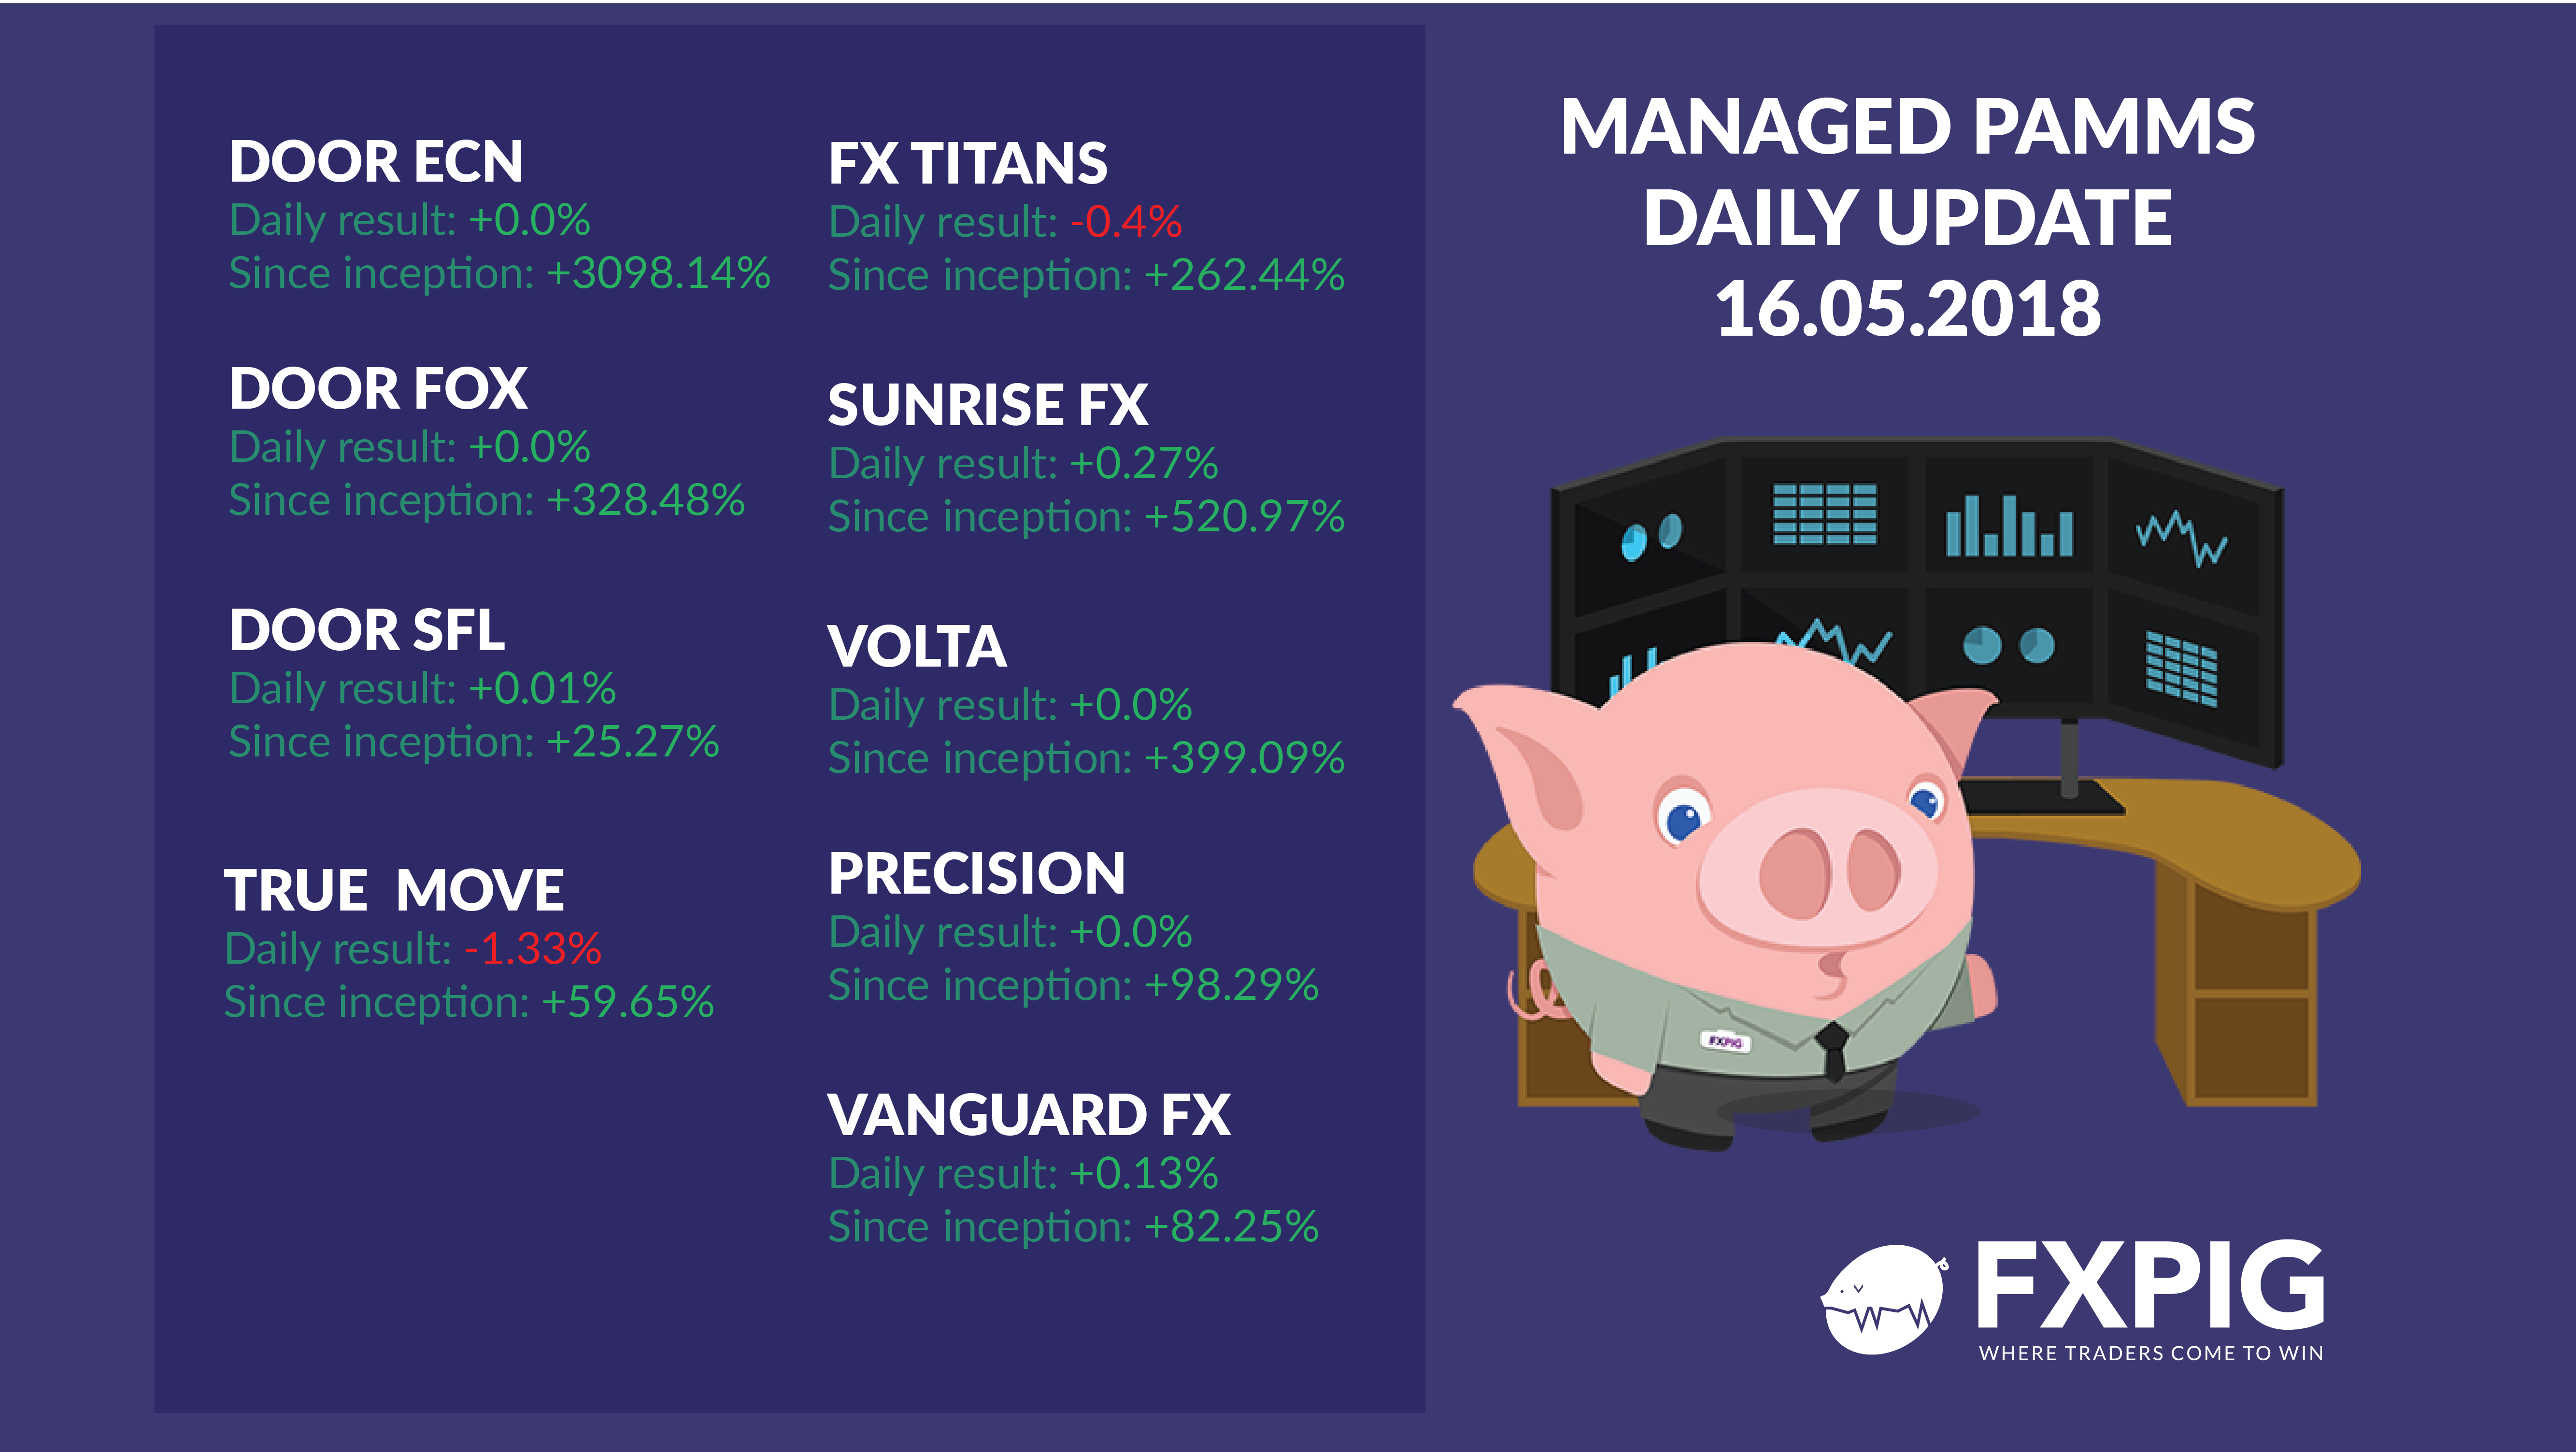 FOREX_Daily-managed-accounts1605_FXPIG